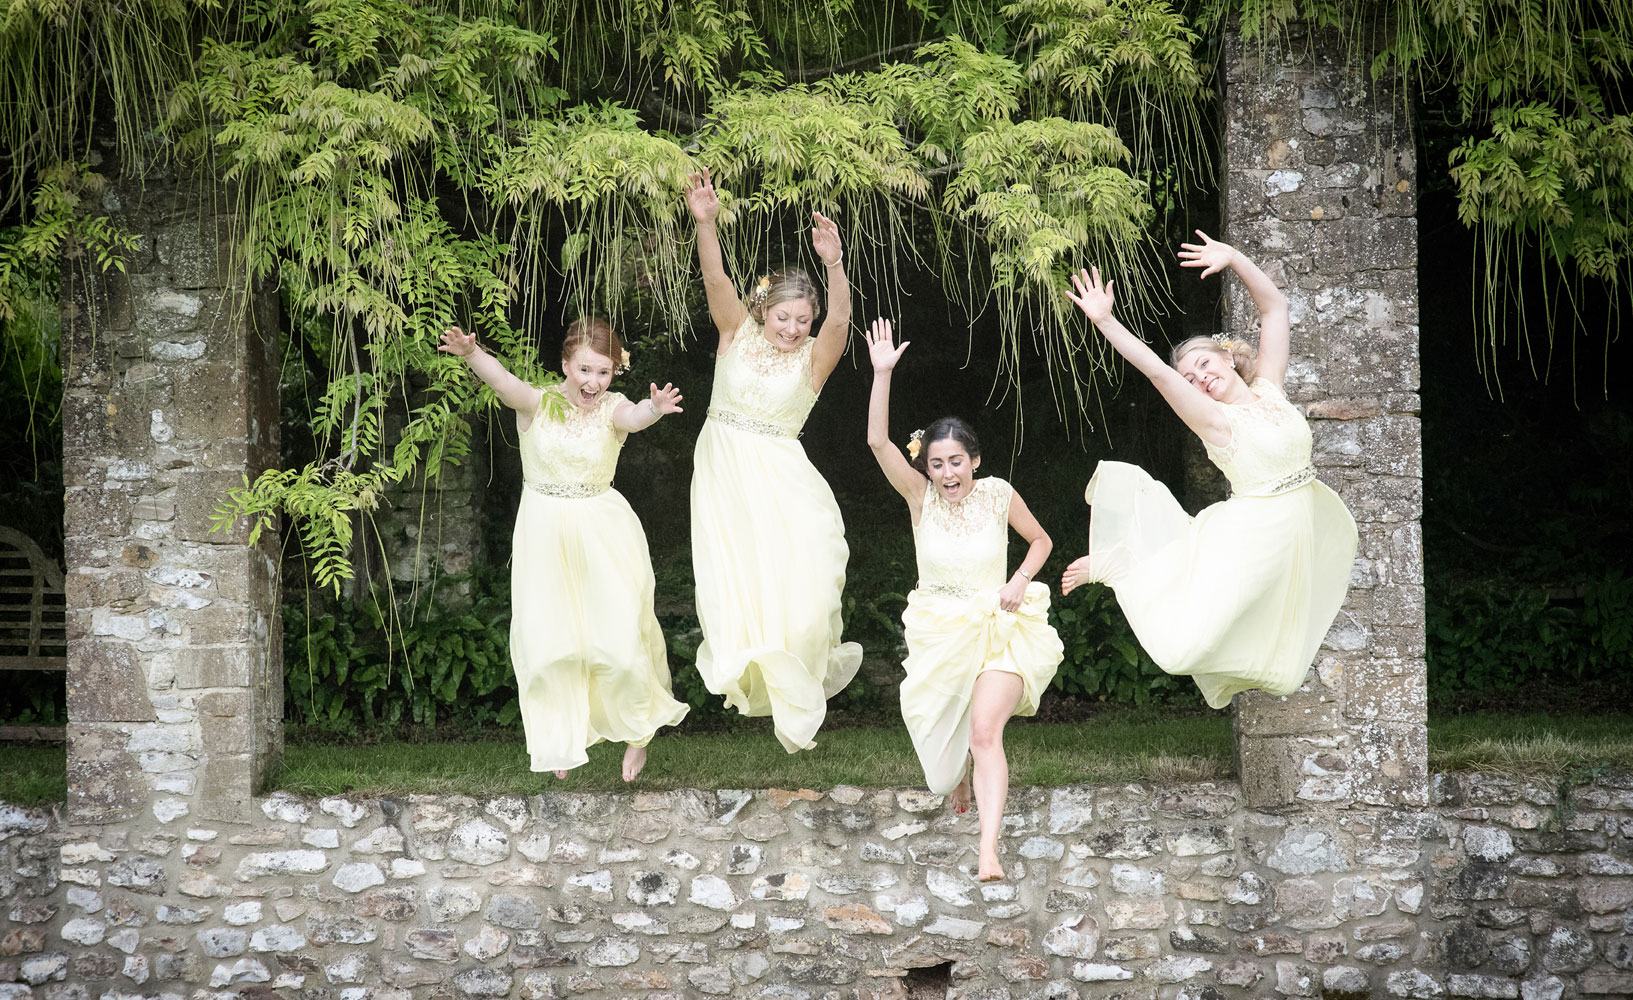 Wedding photographers Crewkerne